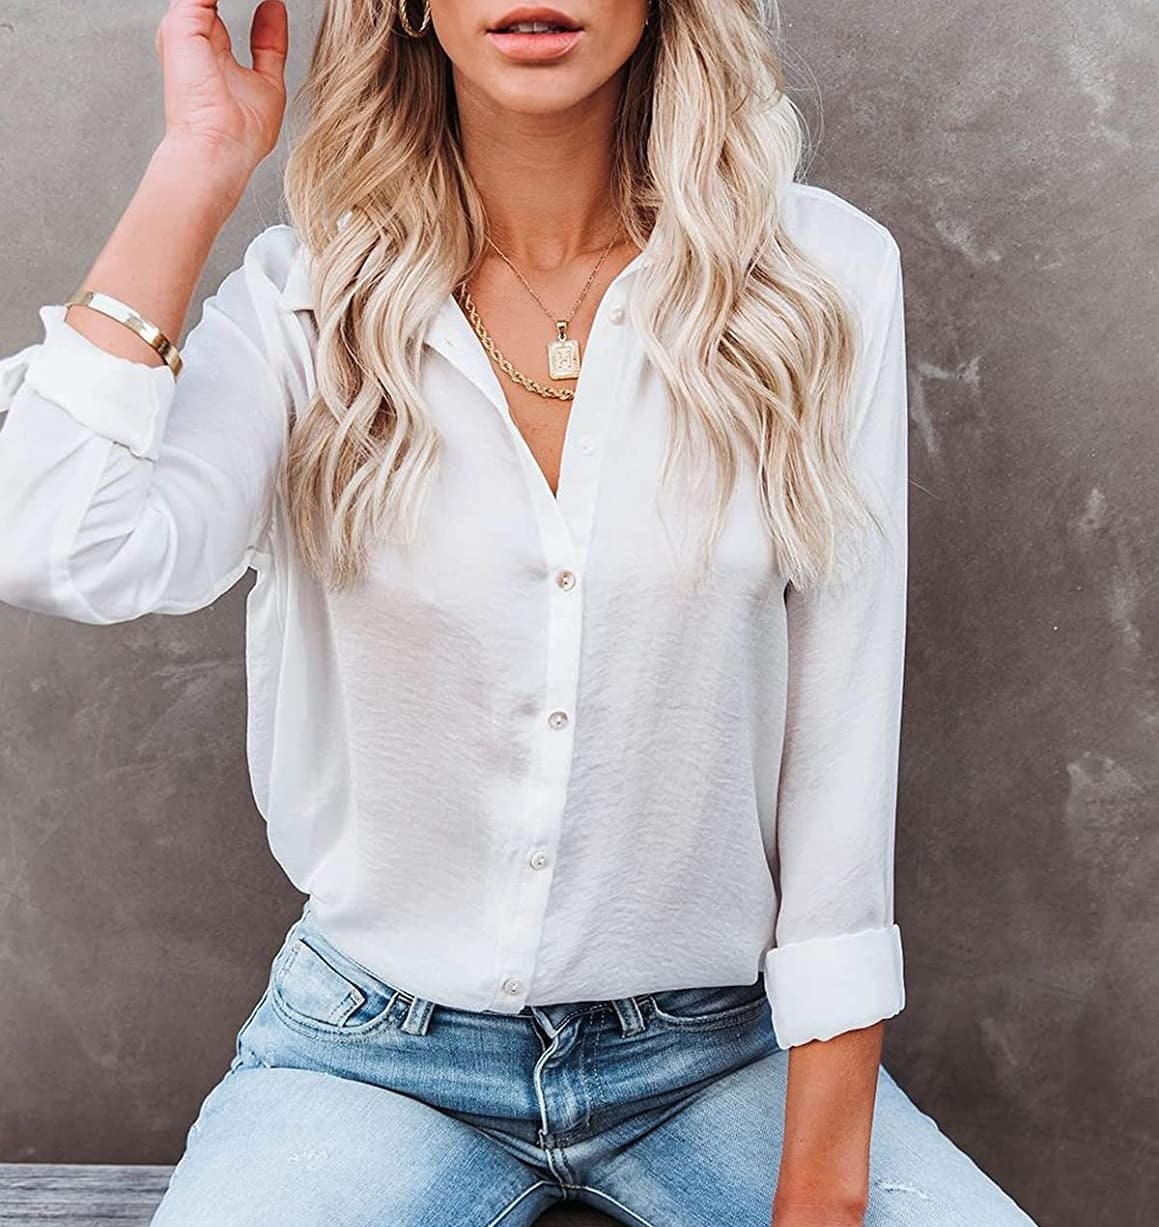 a person wearing the blouse with jeans